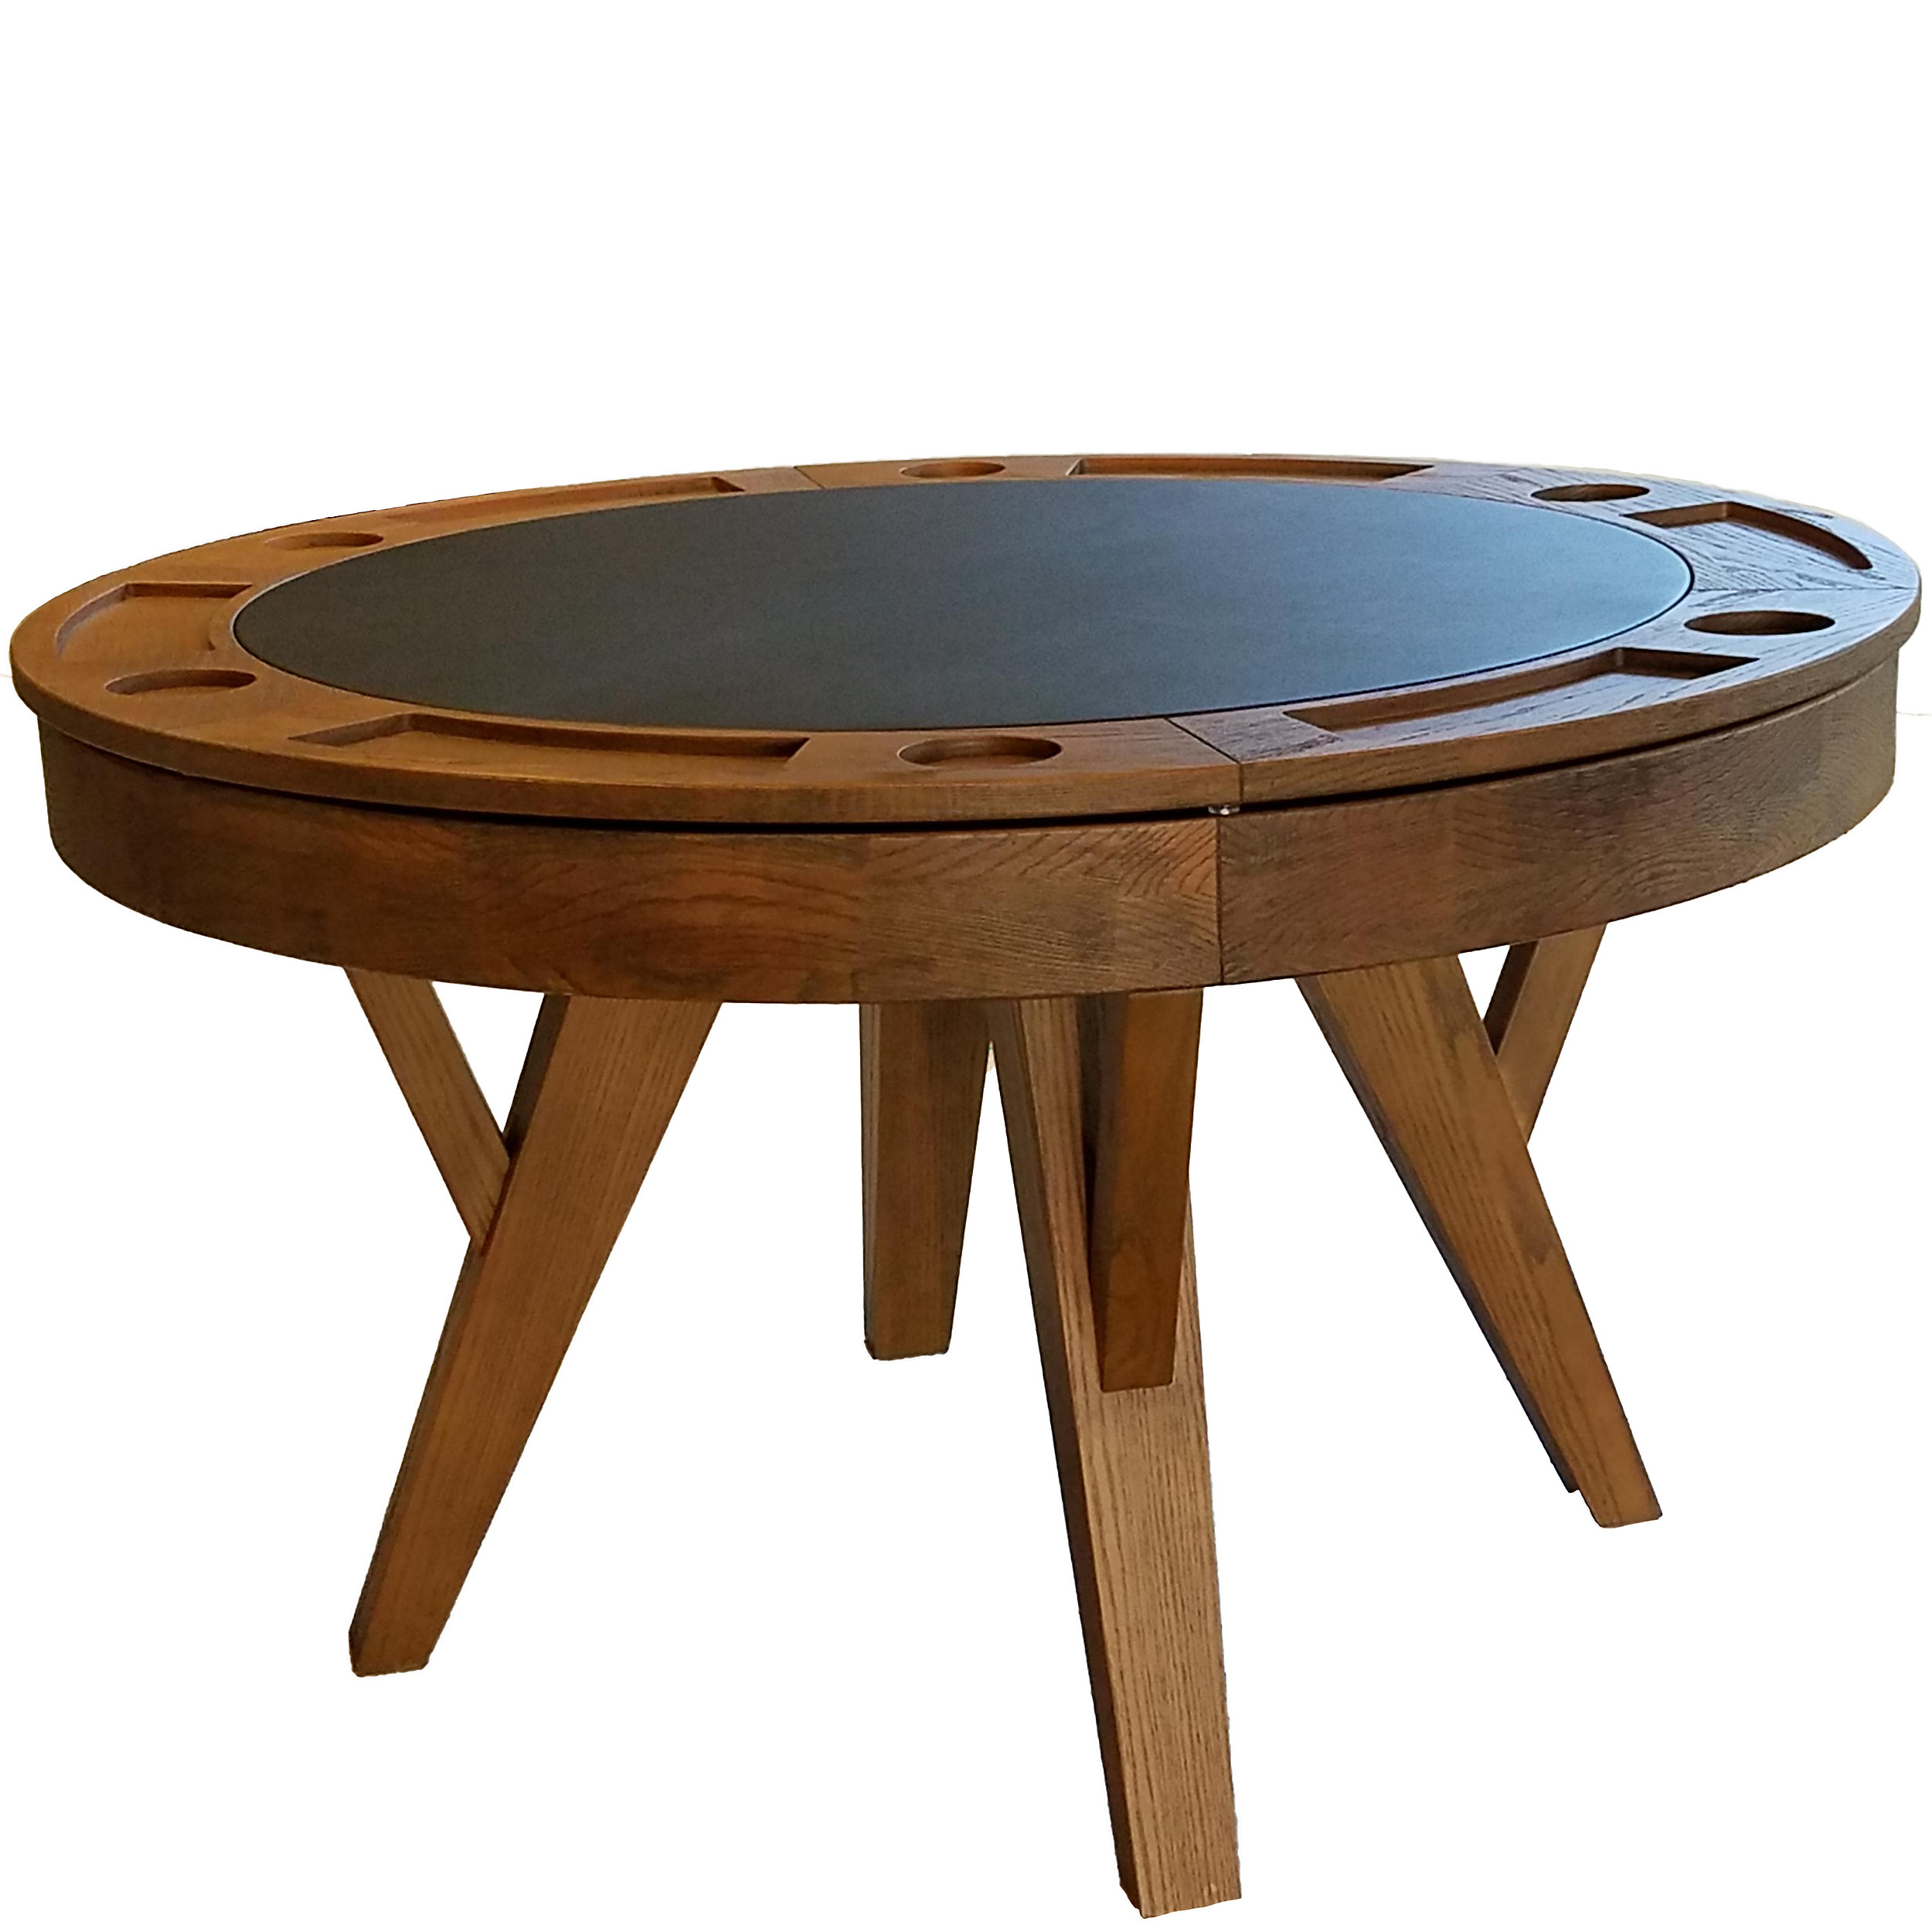 Sensational Round Game Table Poker Tables Online Billiard Factory Home Interior And Landscaping Elinuenasavecom